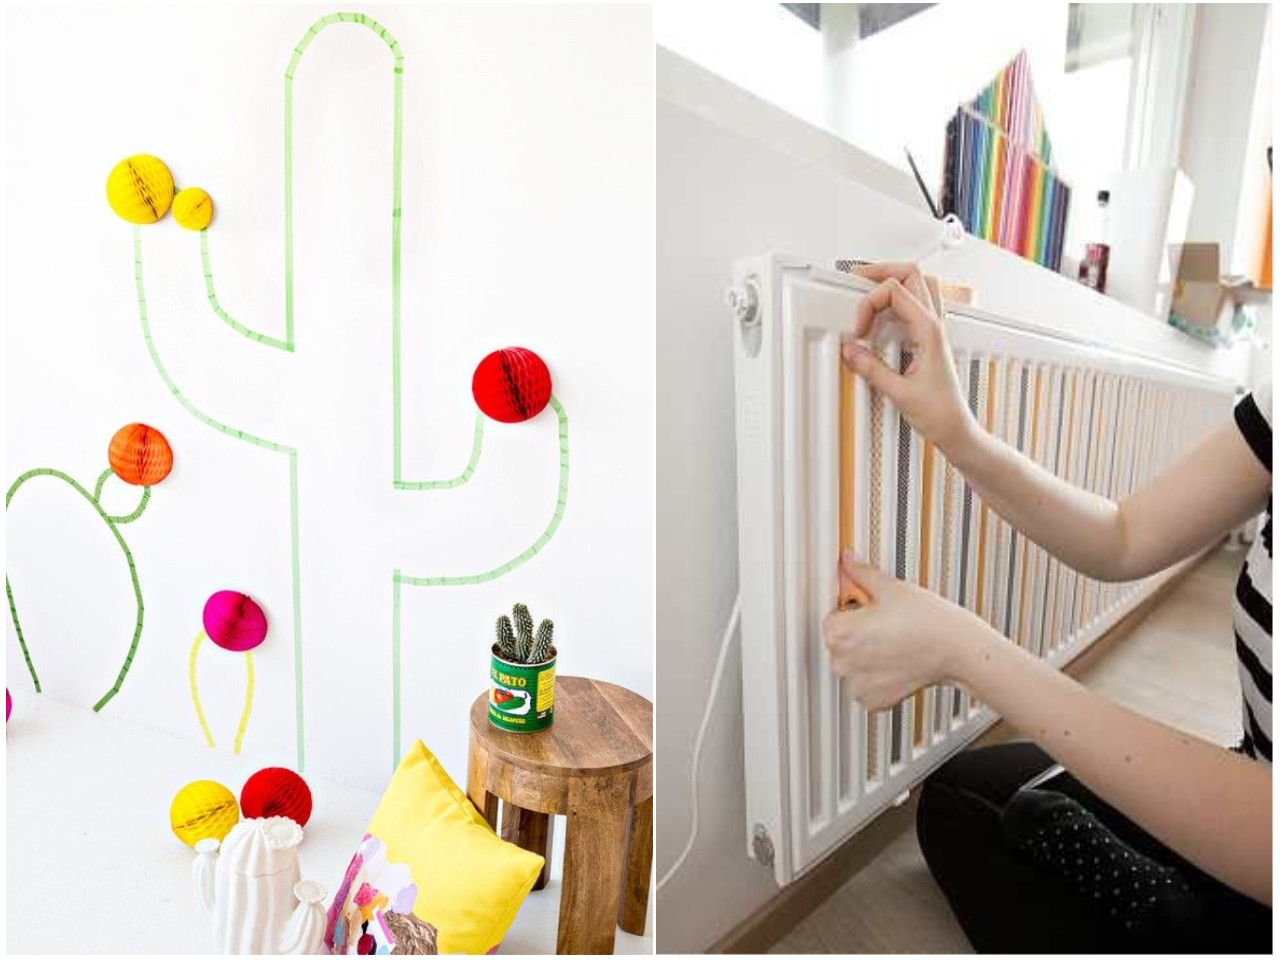 12 ideas econ micas para decorar habitaciones infantiles for Ideas de decoracion baratas y originales